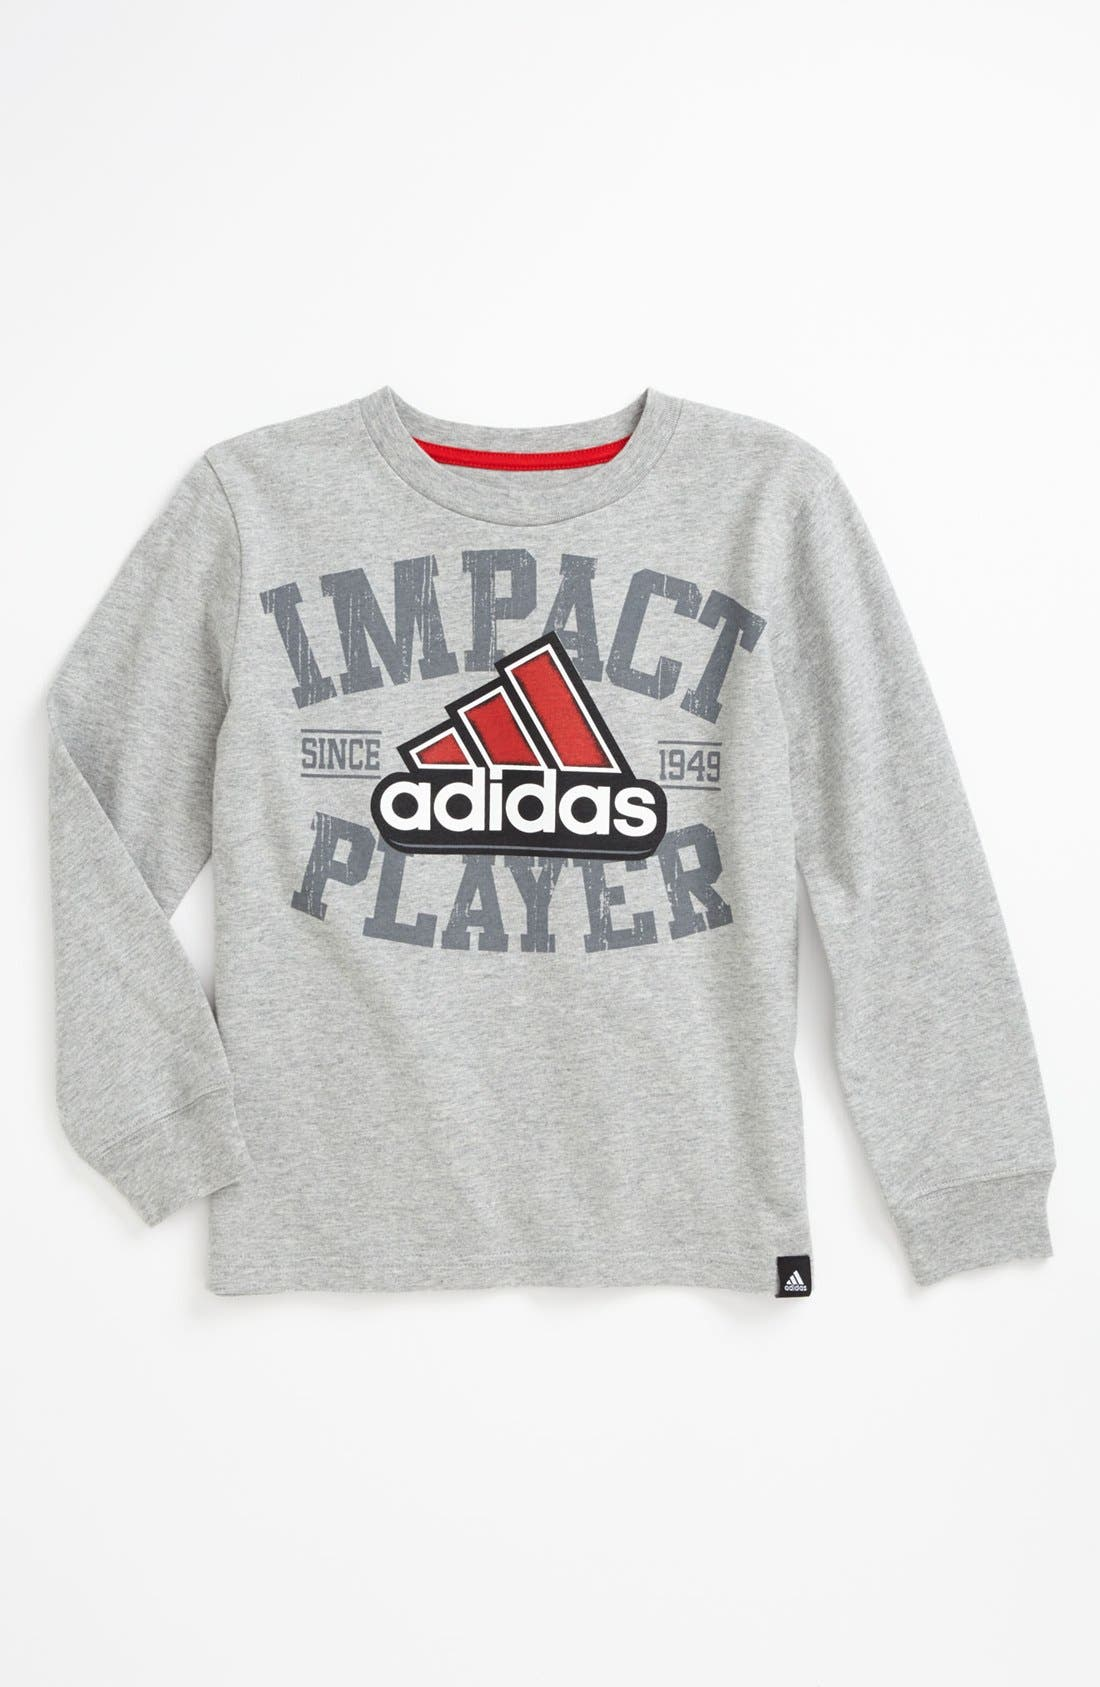 Alternate Image 1 Selected - adidas 'Impact Player' T-Shirt (Little Boys)